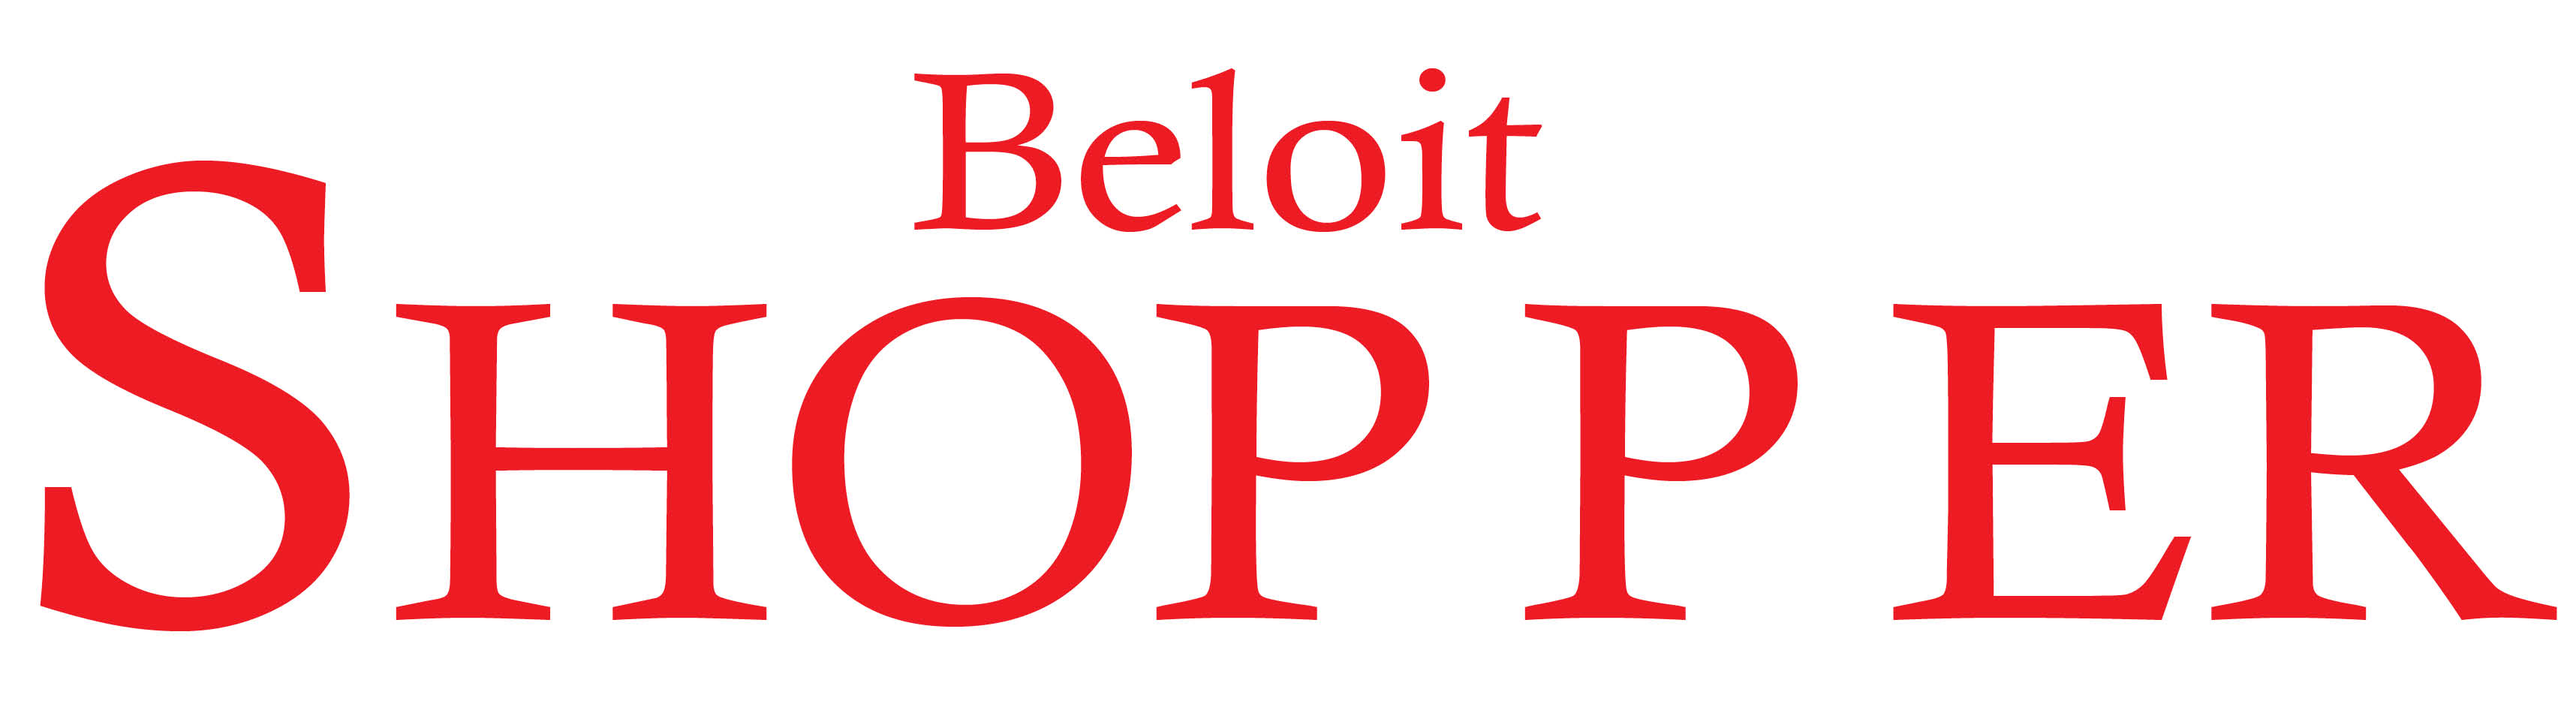 7/26/18 Beloit Shopper